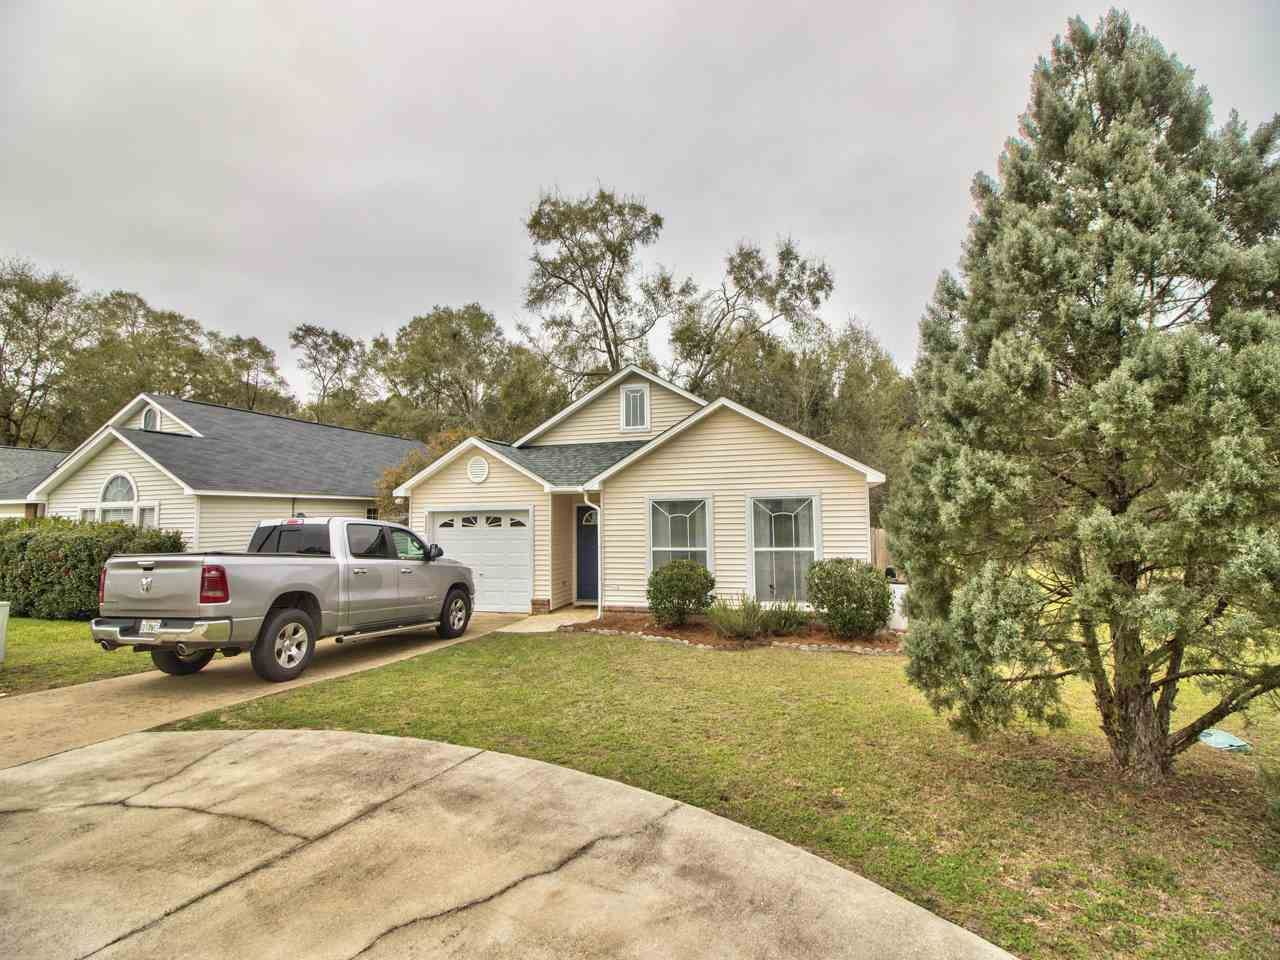 Photo of 5552 TOWER WOODS Trail, TALLAHASSEE, FL 32303 (MLS # 315926)